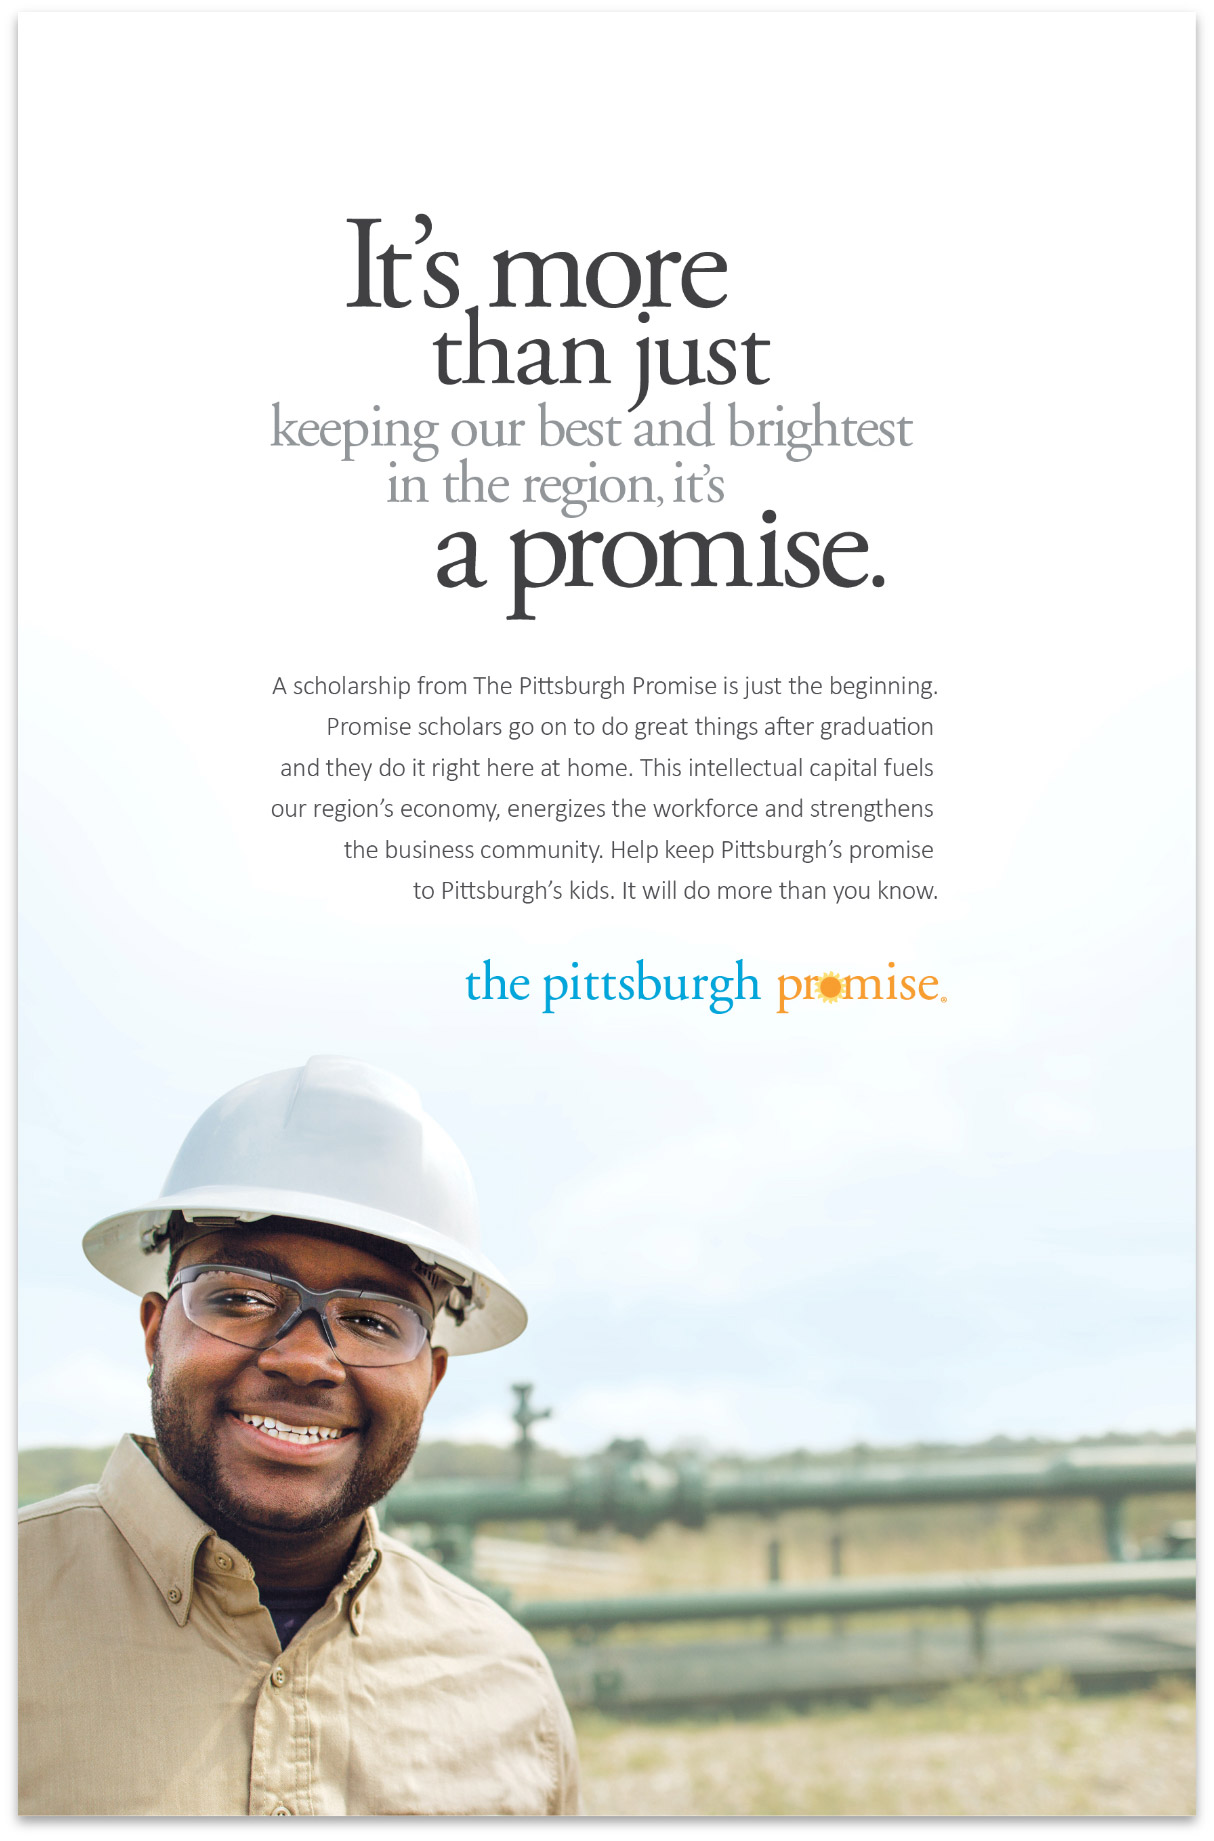 It's more than just keeping our best and brightest in the region, it's a promise.